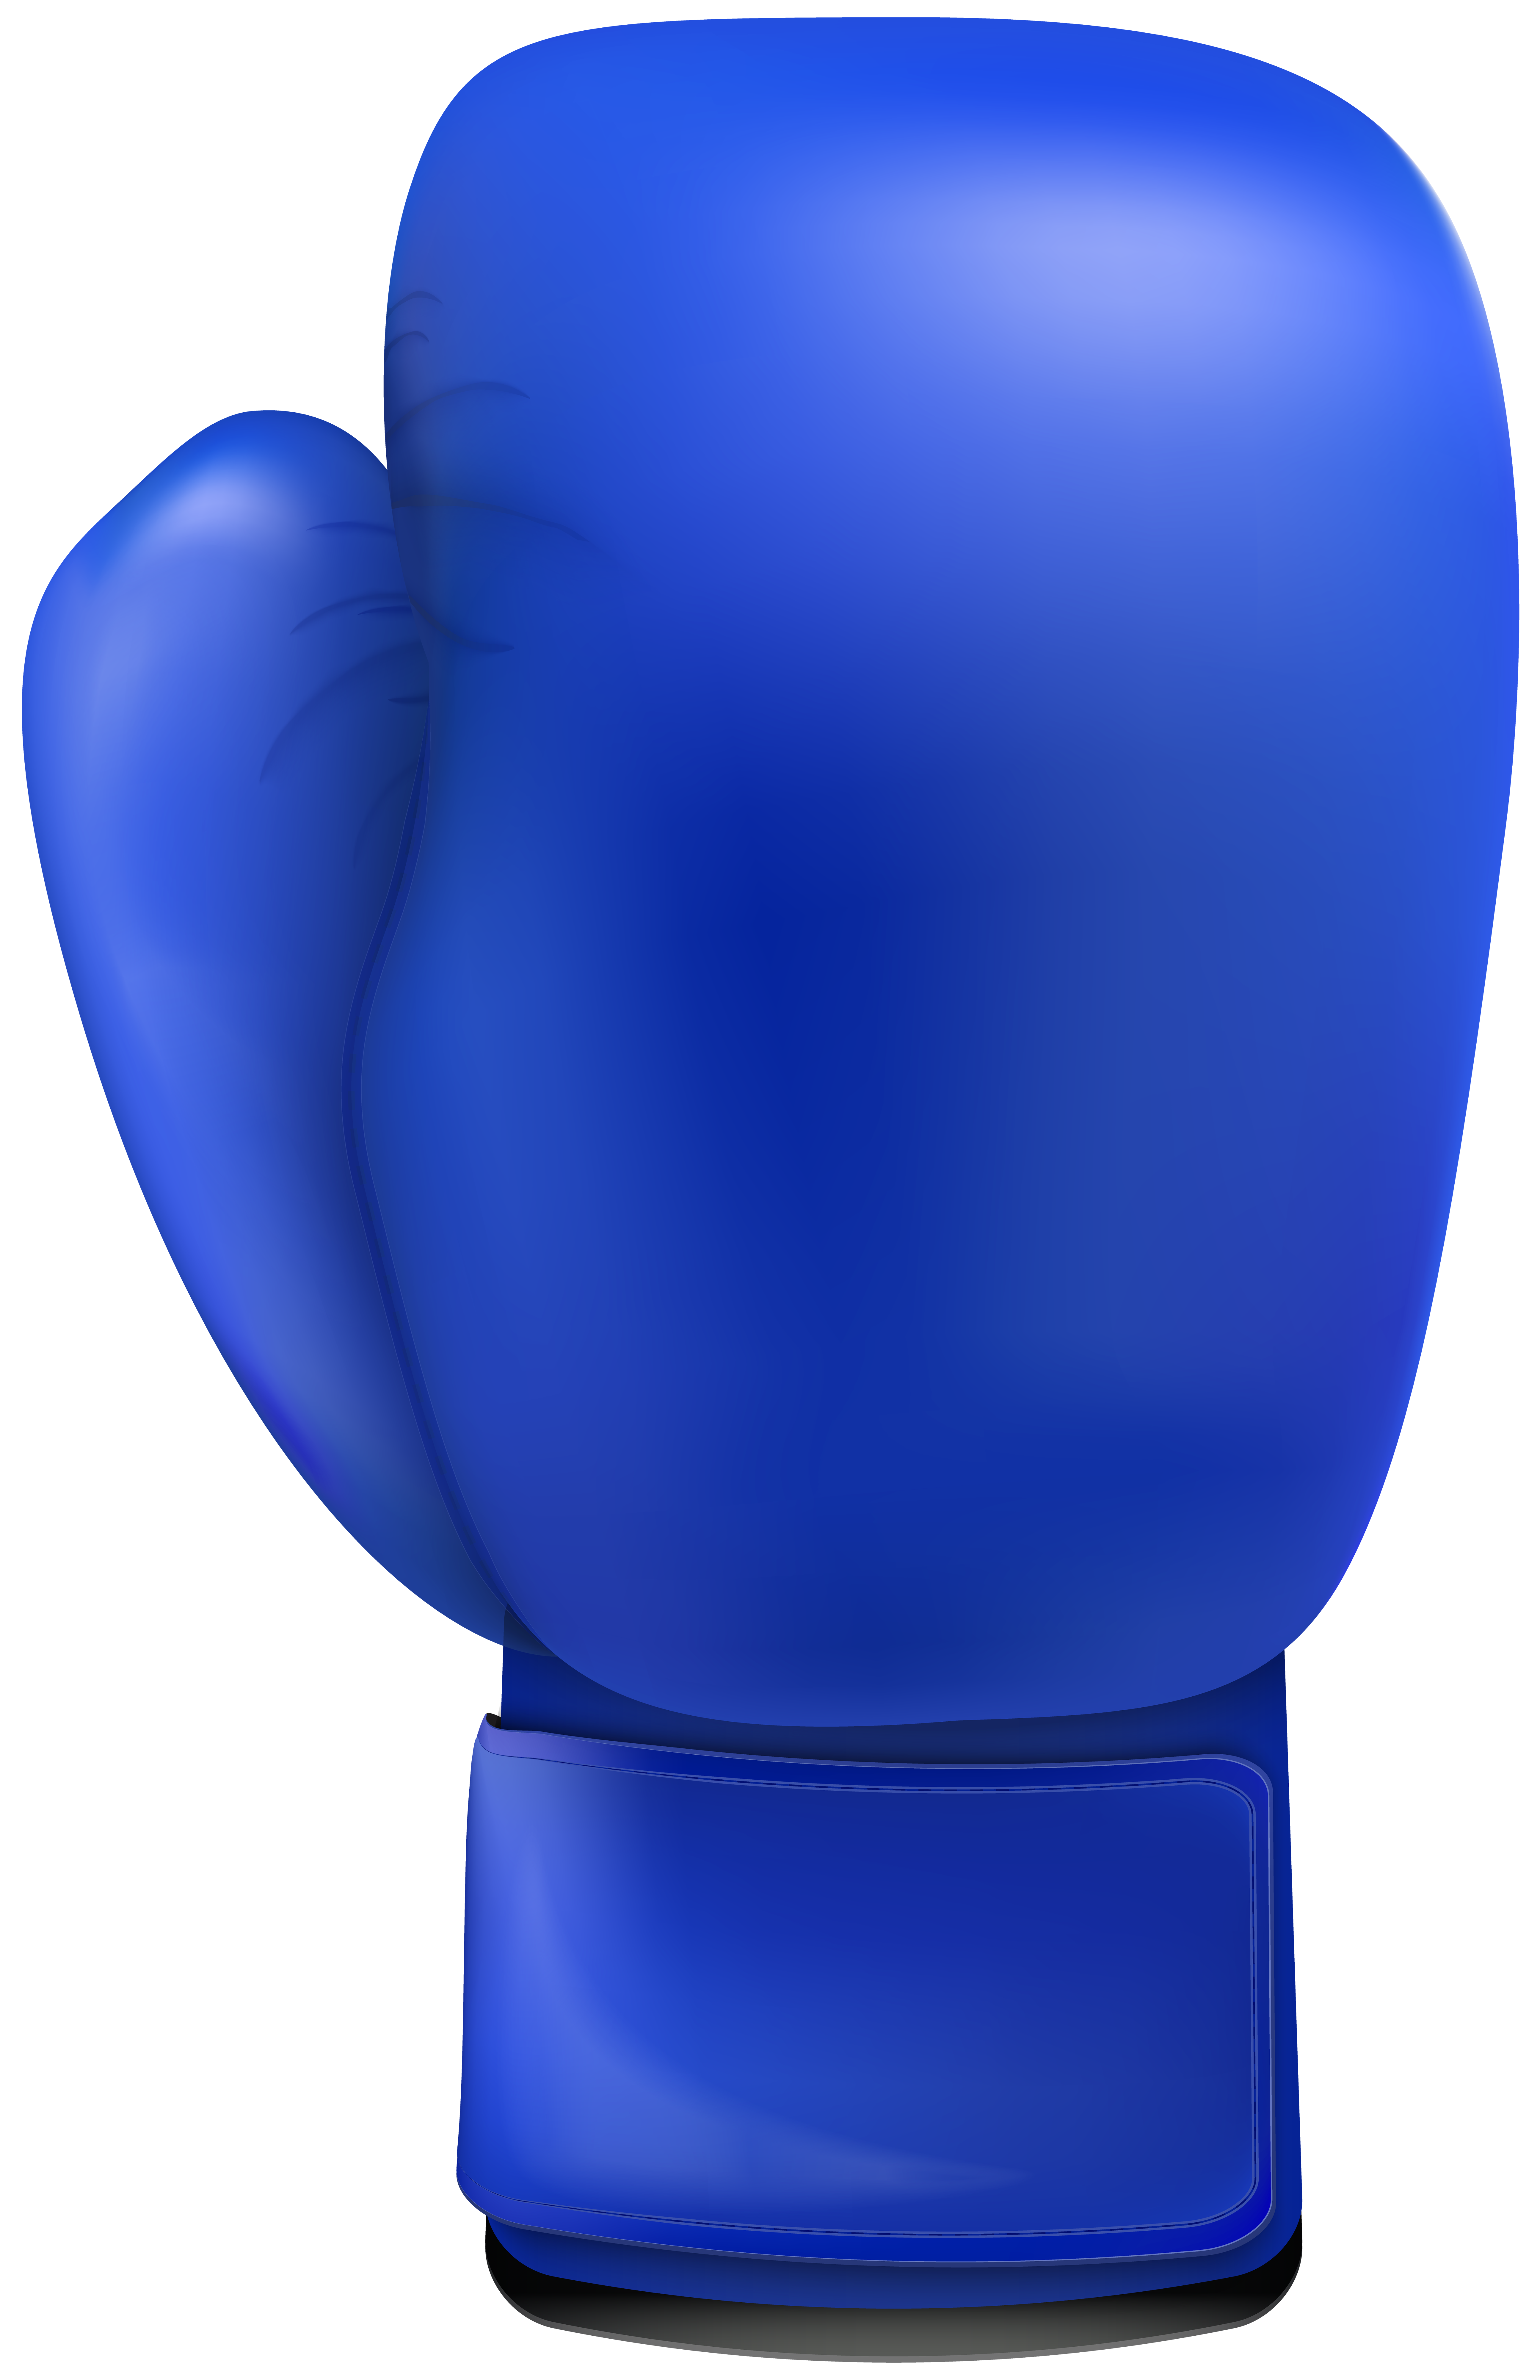 Boxing png clip art. Gloves clipart blue glove